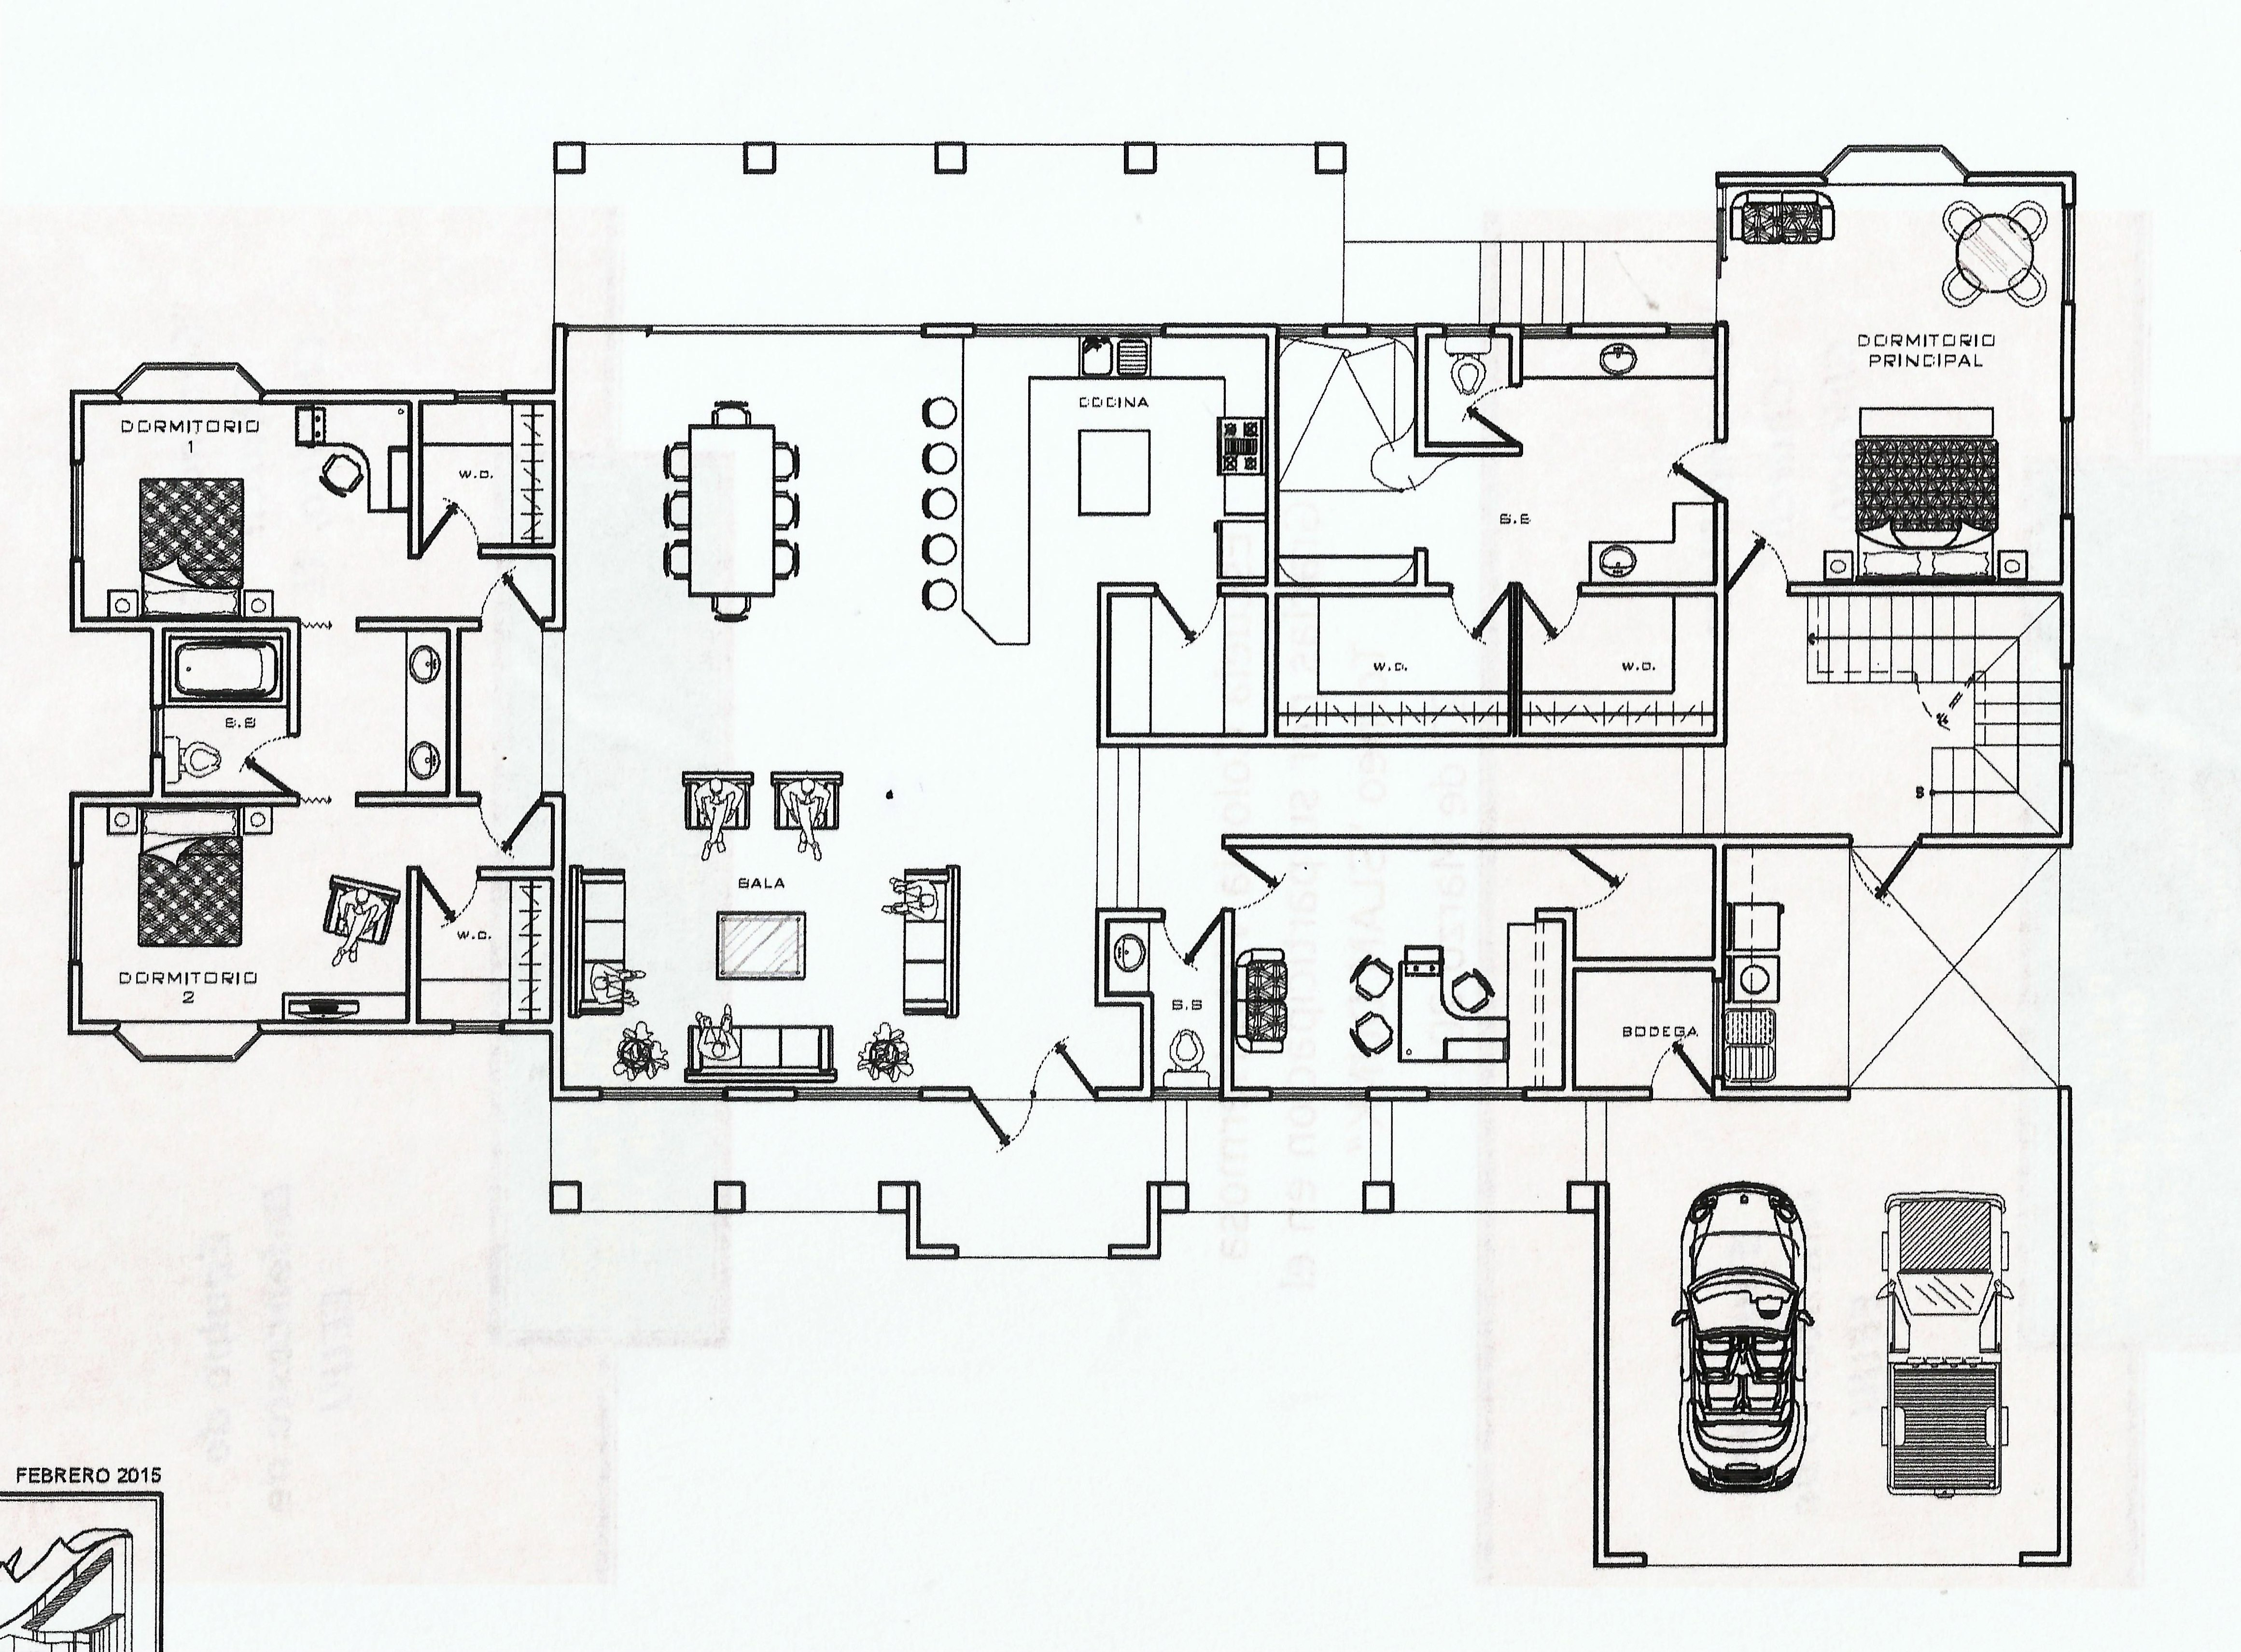 28 Country Homes Floor Plans Small Country House Plans 17 besides Southern Living House Plans One Story also Norris Homes Floor Plans as well Nice Family Home Floor Plans besides Ralph Jones Home Plans. on french country homes in texas